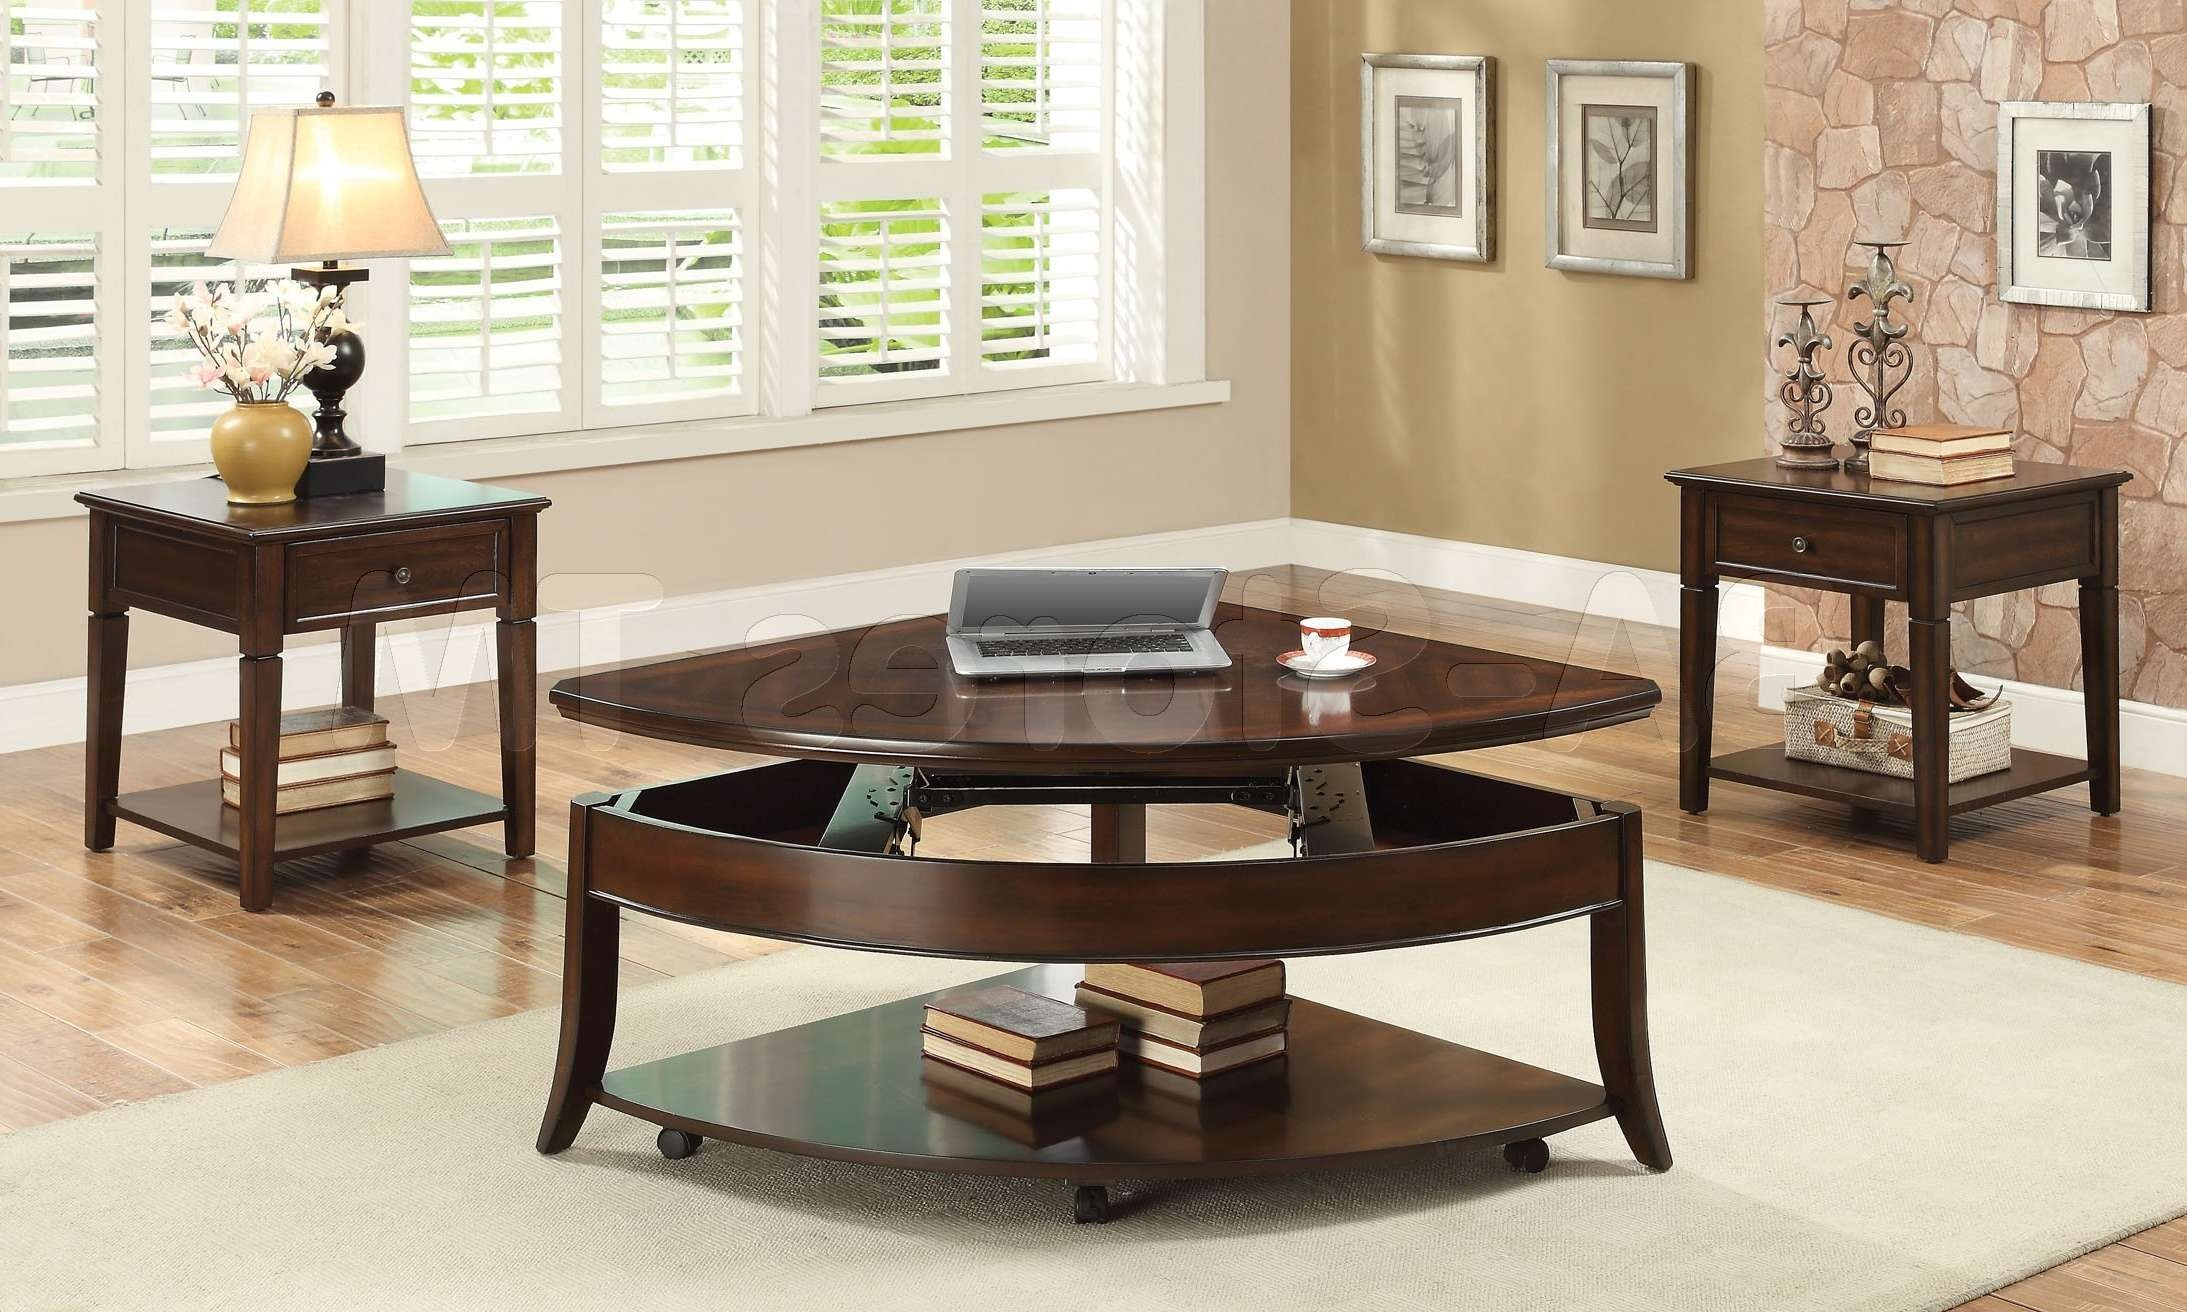 Coffee Tables : End Tables And Coffee Table Set Awesome Amazing Regarding 2018 Contemporary Coffee Table Sets (View 4 of 20)